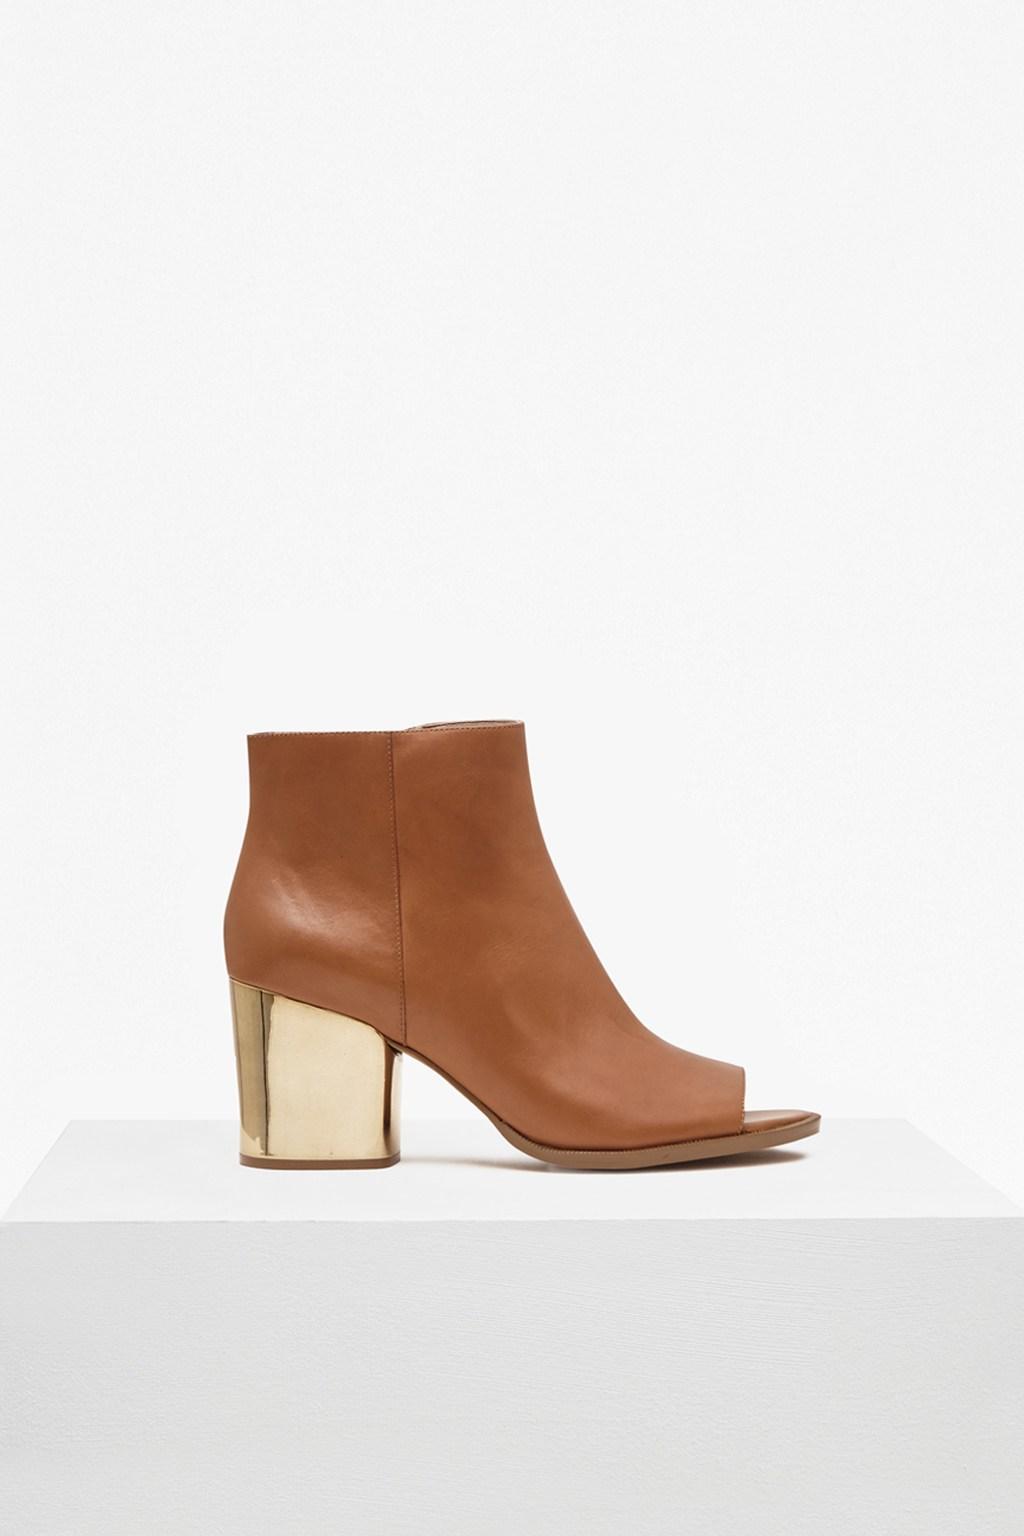 heeled boots with open toe